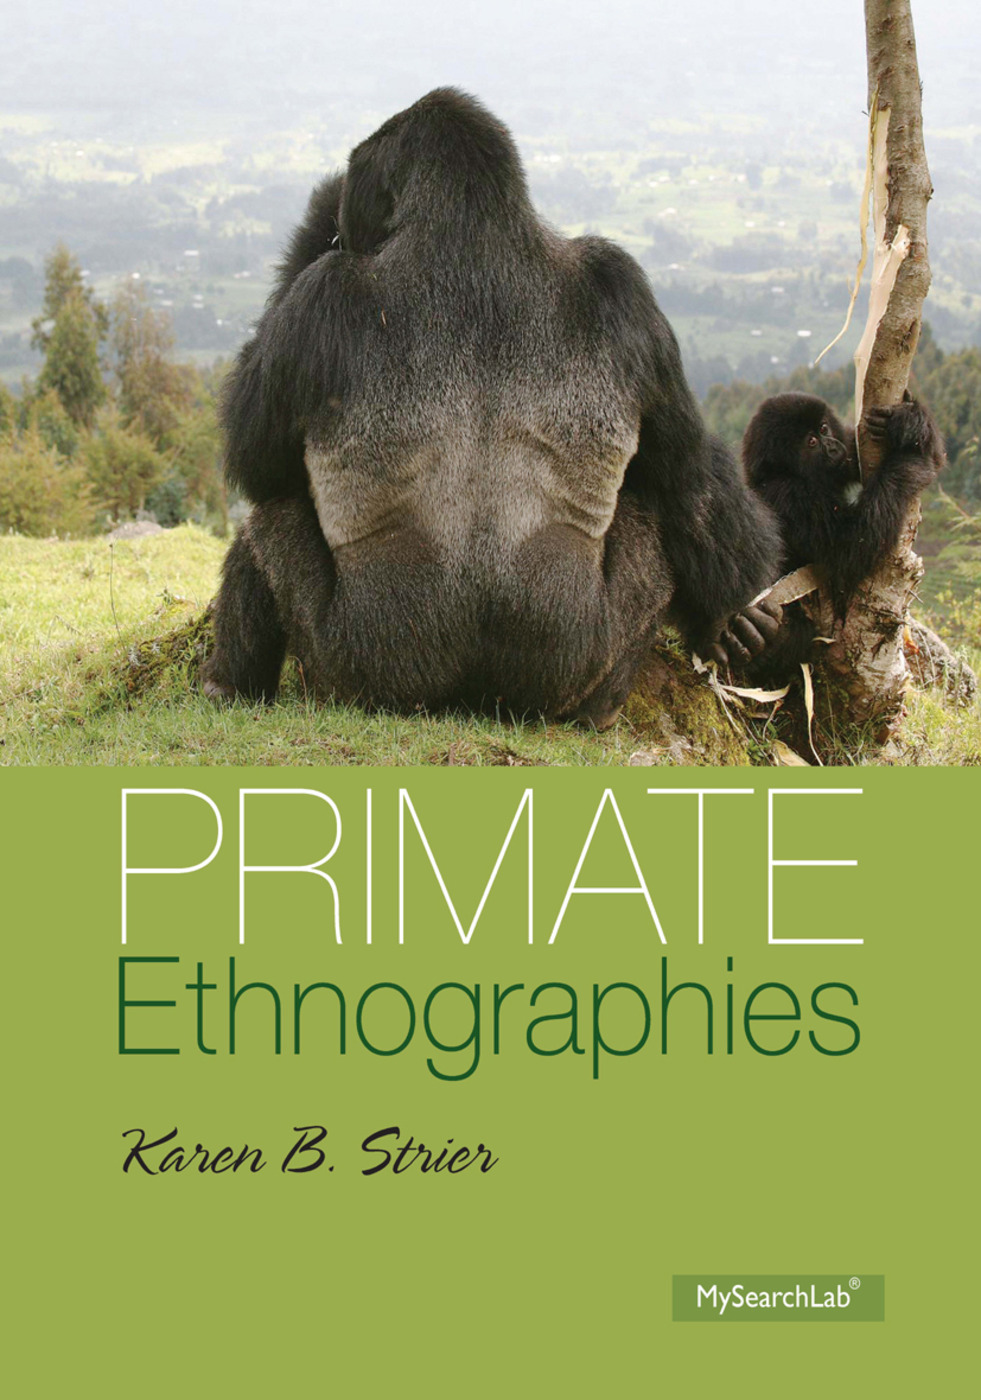 Primate Ethnographies: 1st Edition (Paperback) book cover